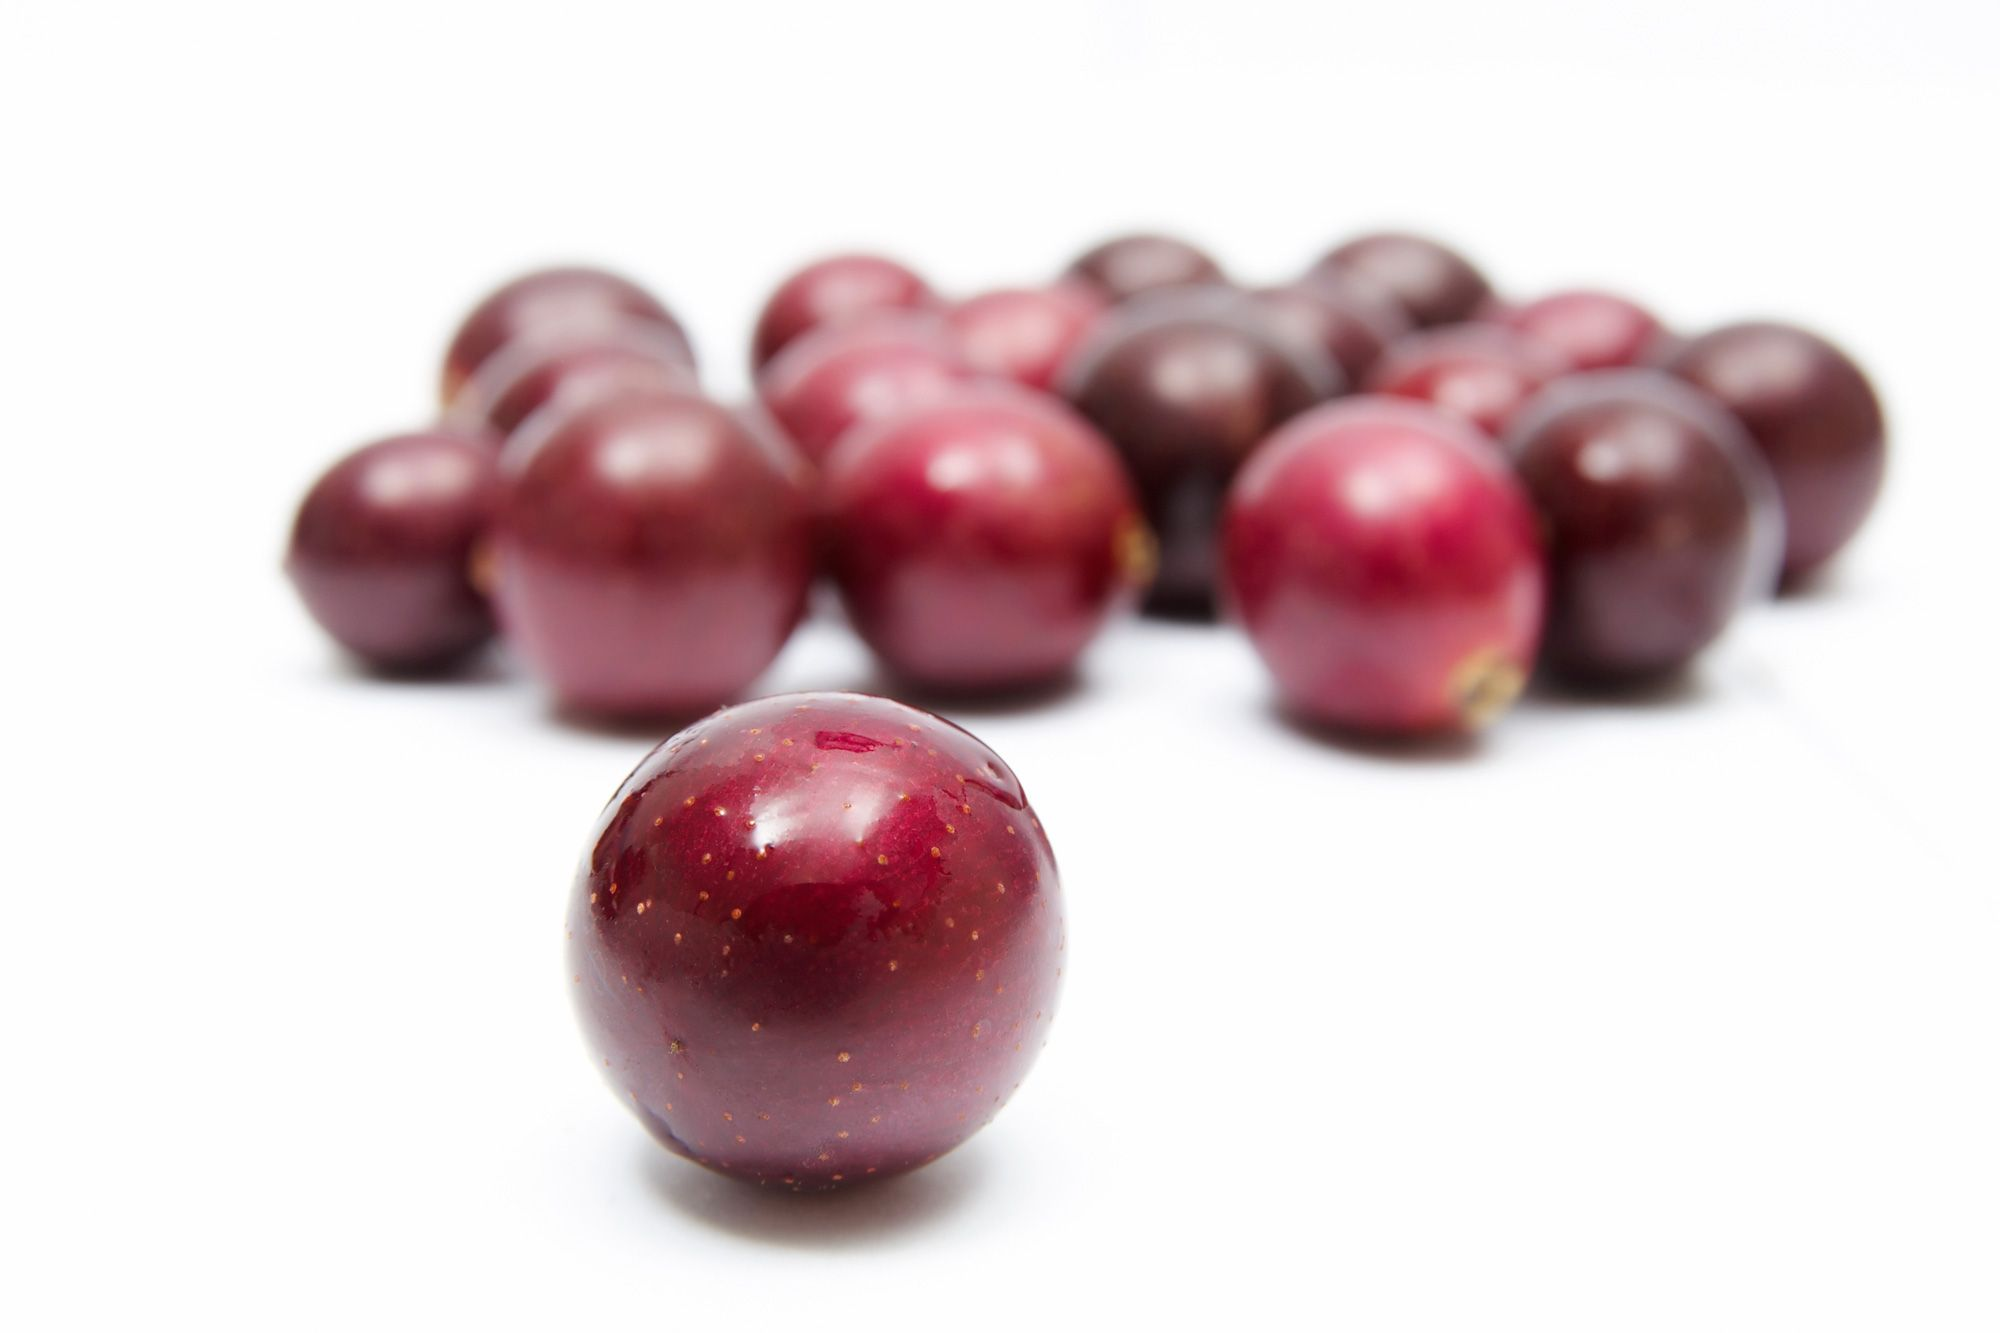 Muscadine Grapes Amazing Green Grapes Nutrition Blackberry Nutrition Lentil Nutrition Facts